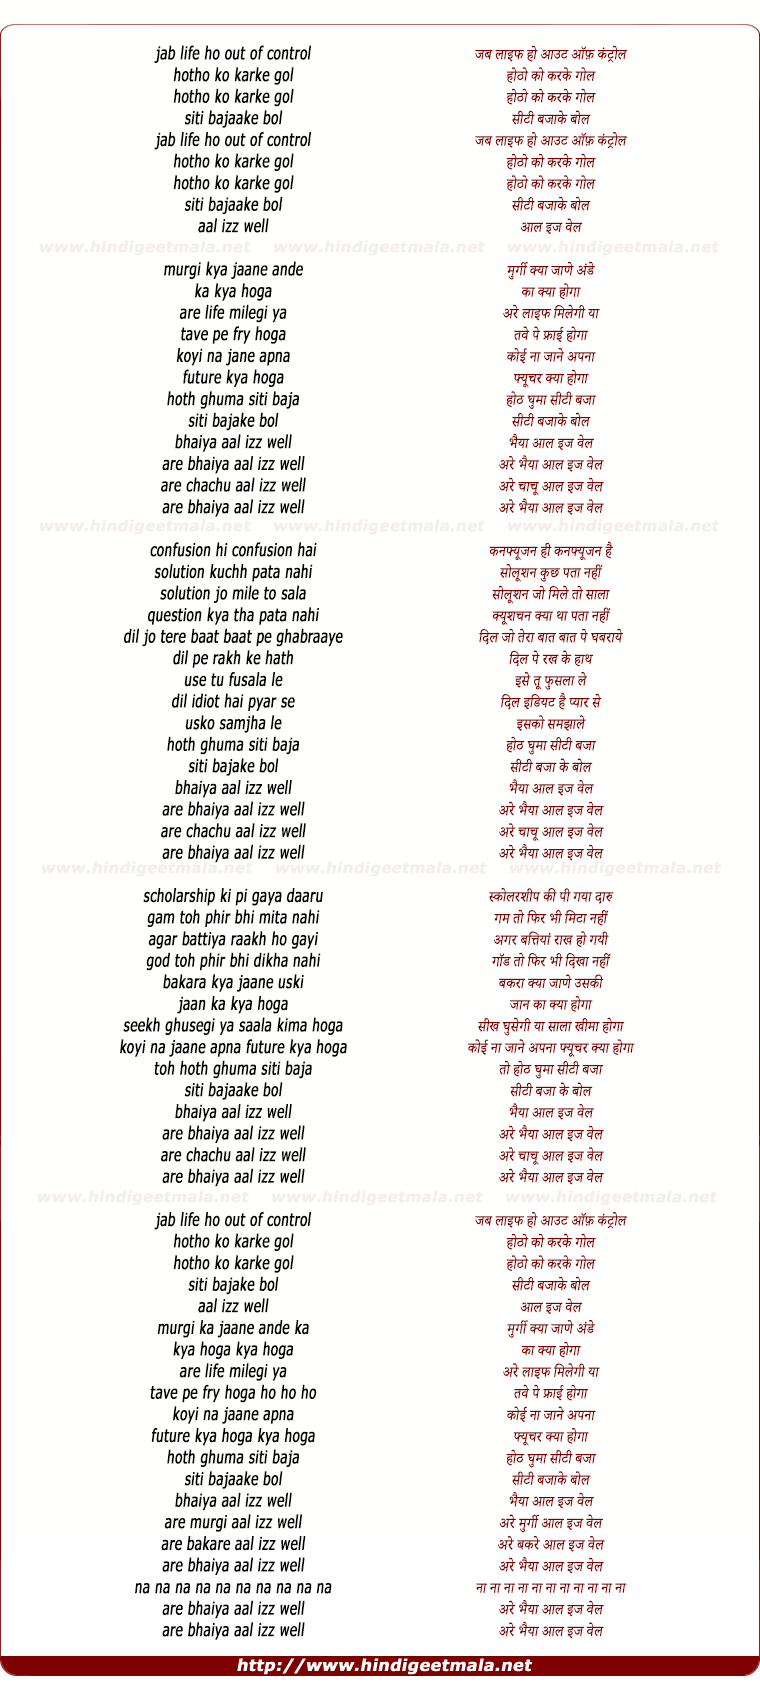 lyrics of song Jab Life Ho Out Of Control (All Izz Well)